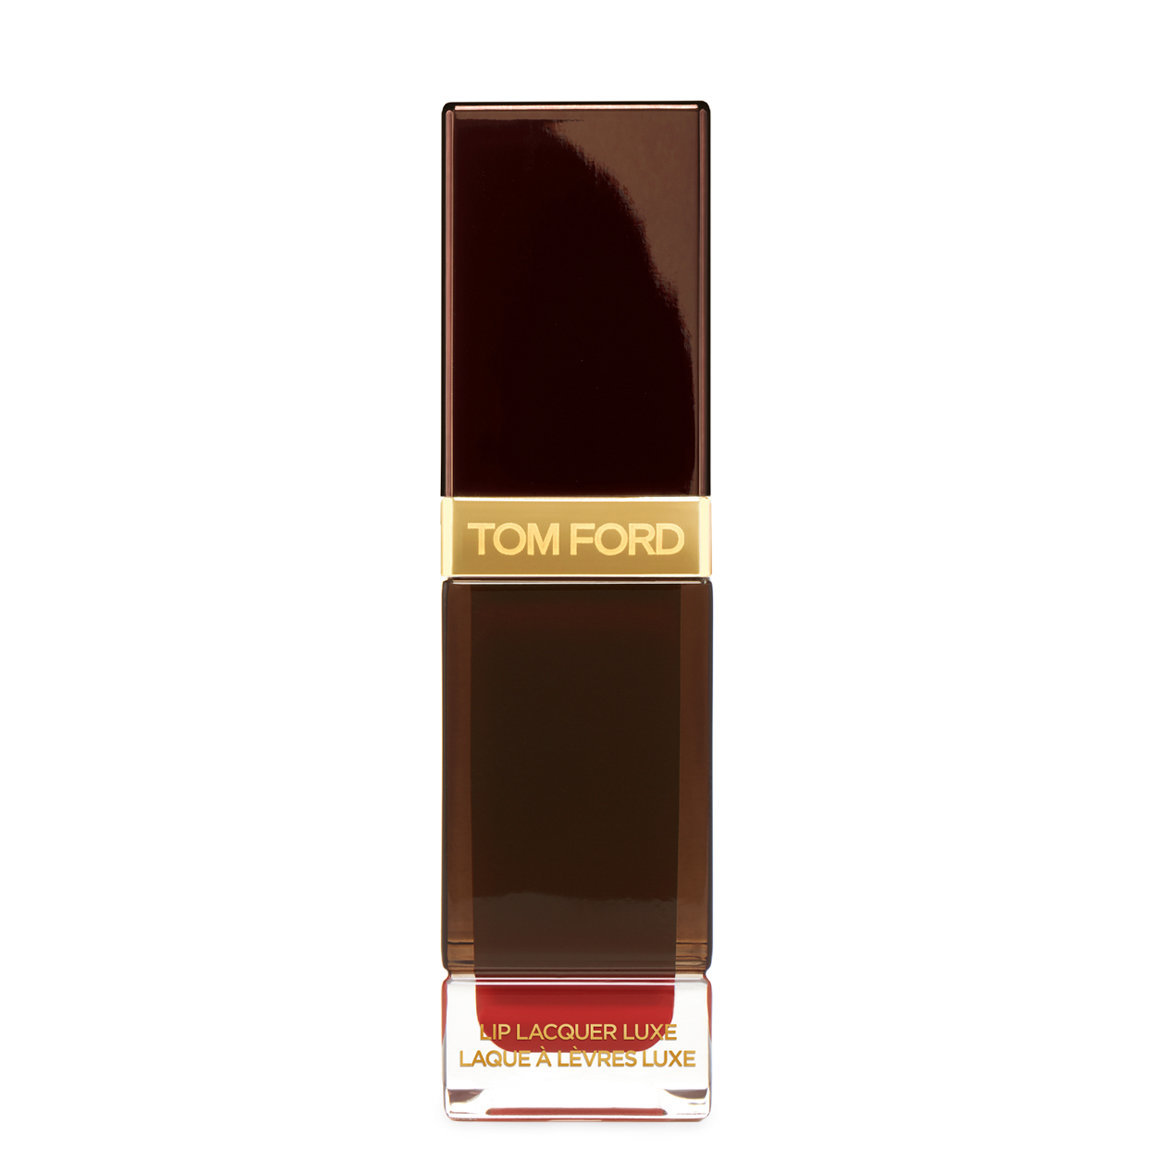 TOM FORD Lip Lacquer Luxe Matte 16 Scarlet Rouge alternative view 1.